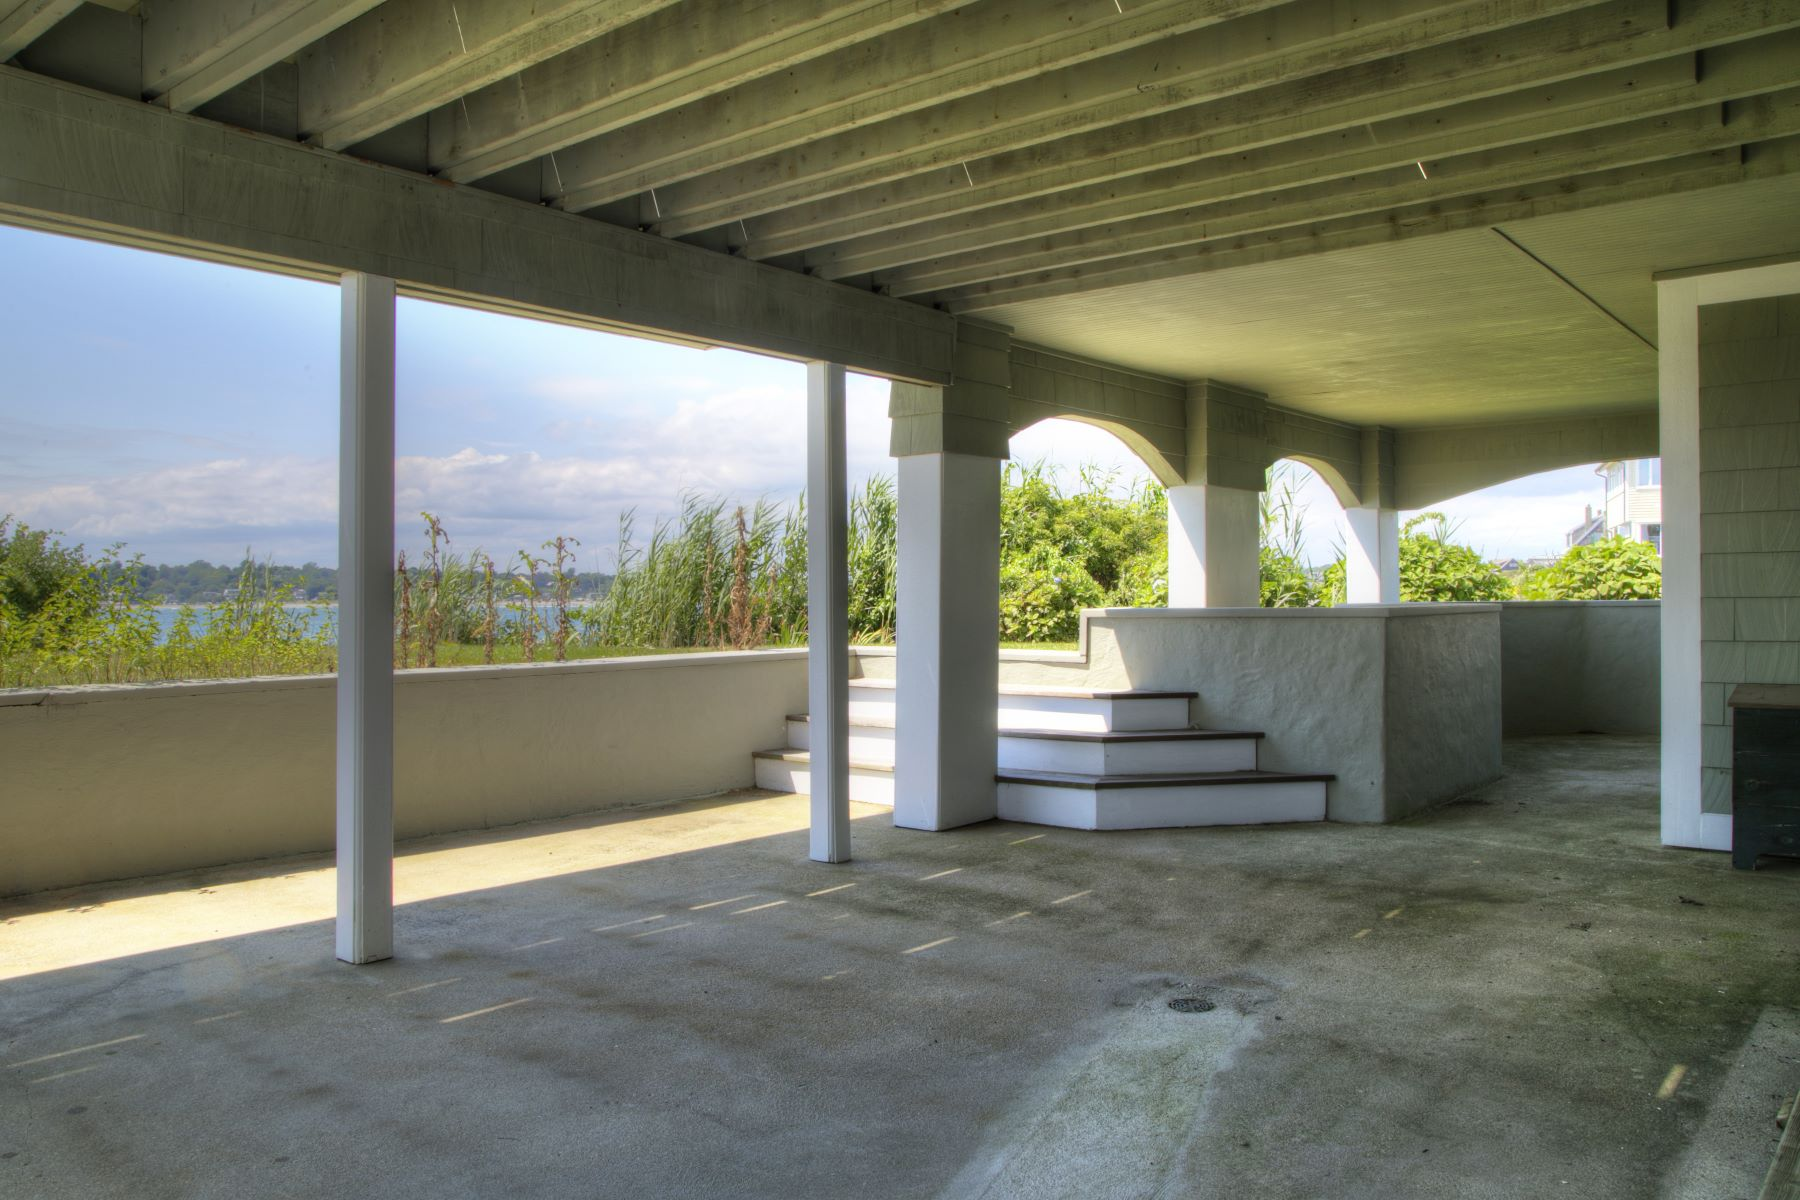 Additional photo for property listing at 'Cliff Cottage' 63 Shore Drive 米德尔敦, 罗得岛 02842 美国